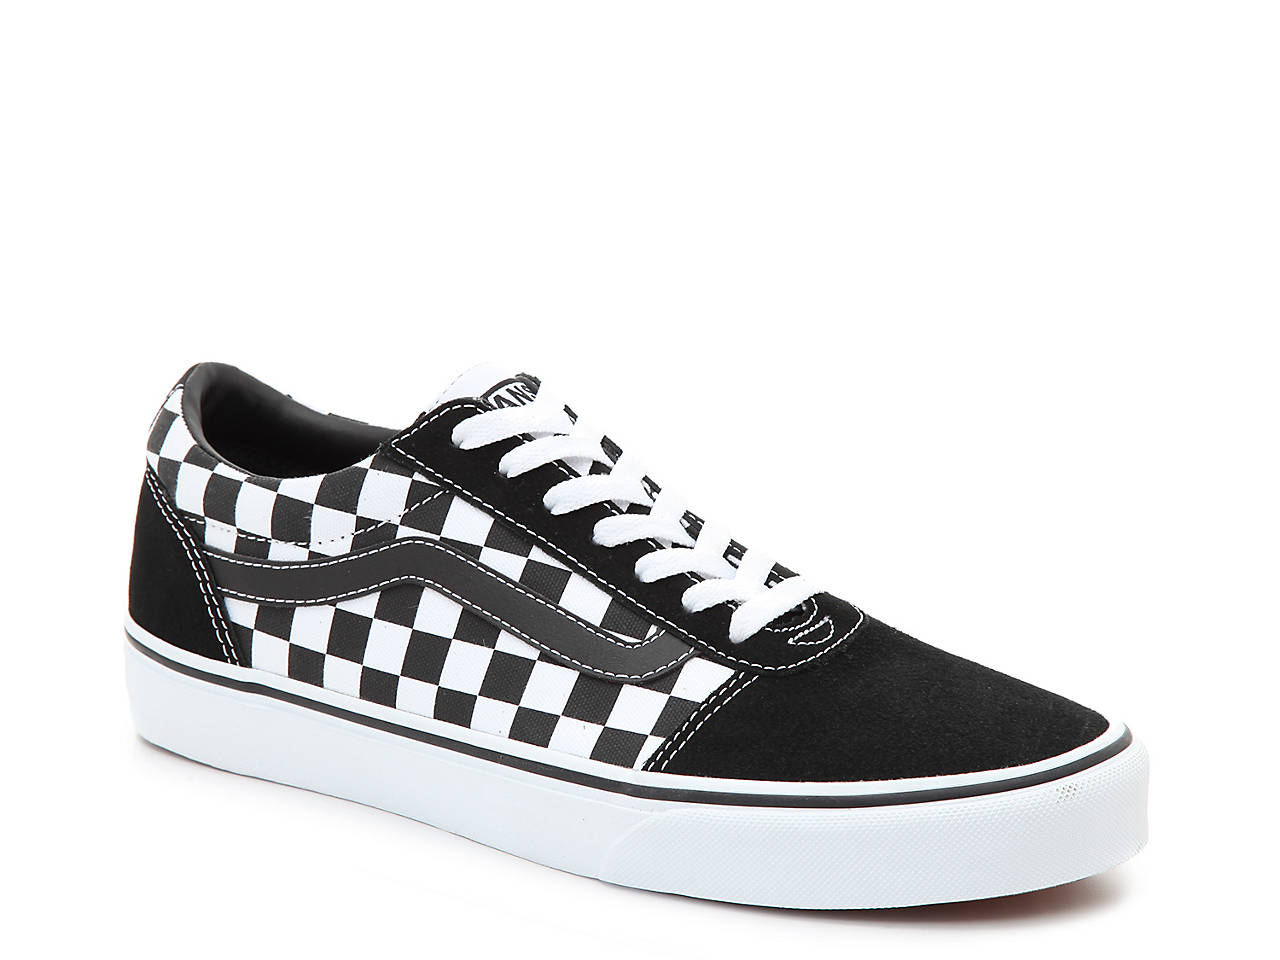 d5b51da02485 Vans Ward Lo Sneaker - Men s Men s Shoes